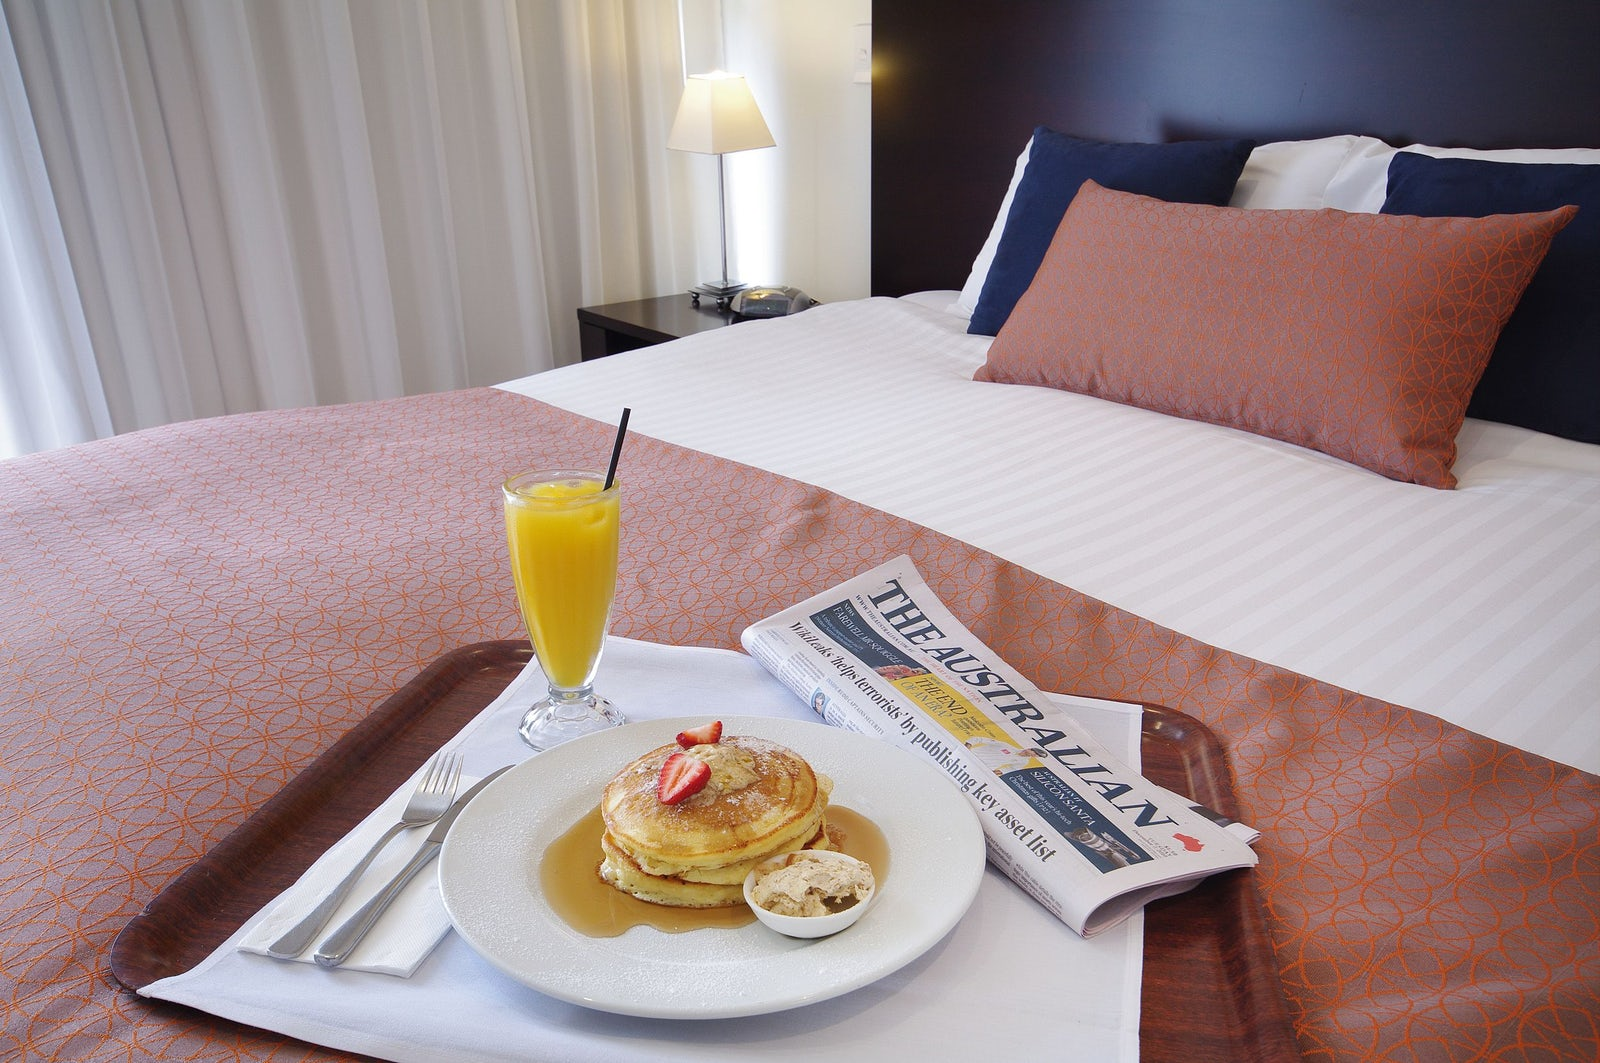 Room service breakfast in bed at macquarie waters